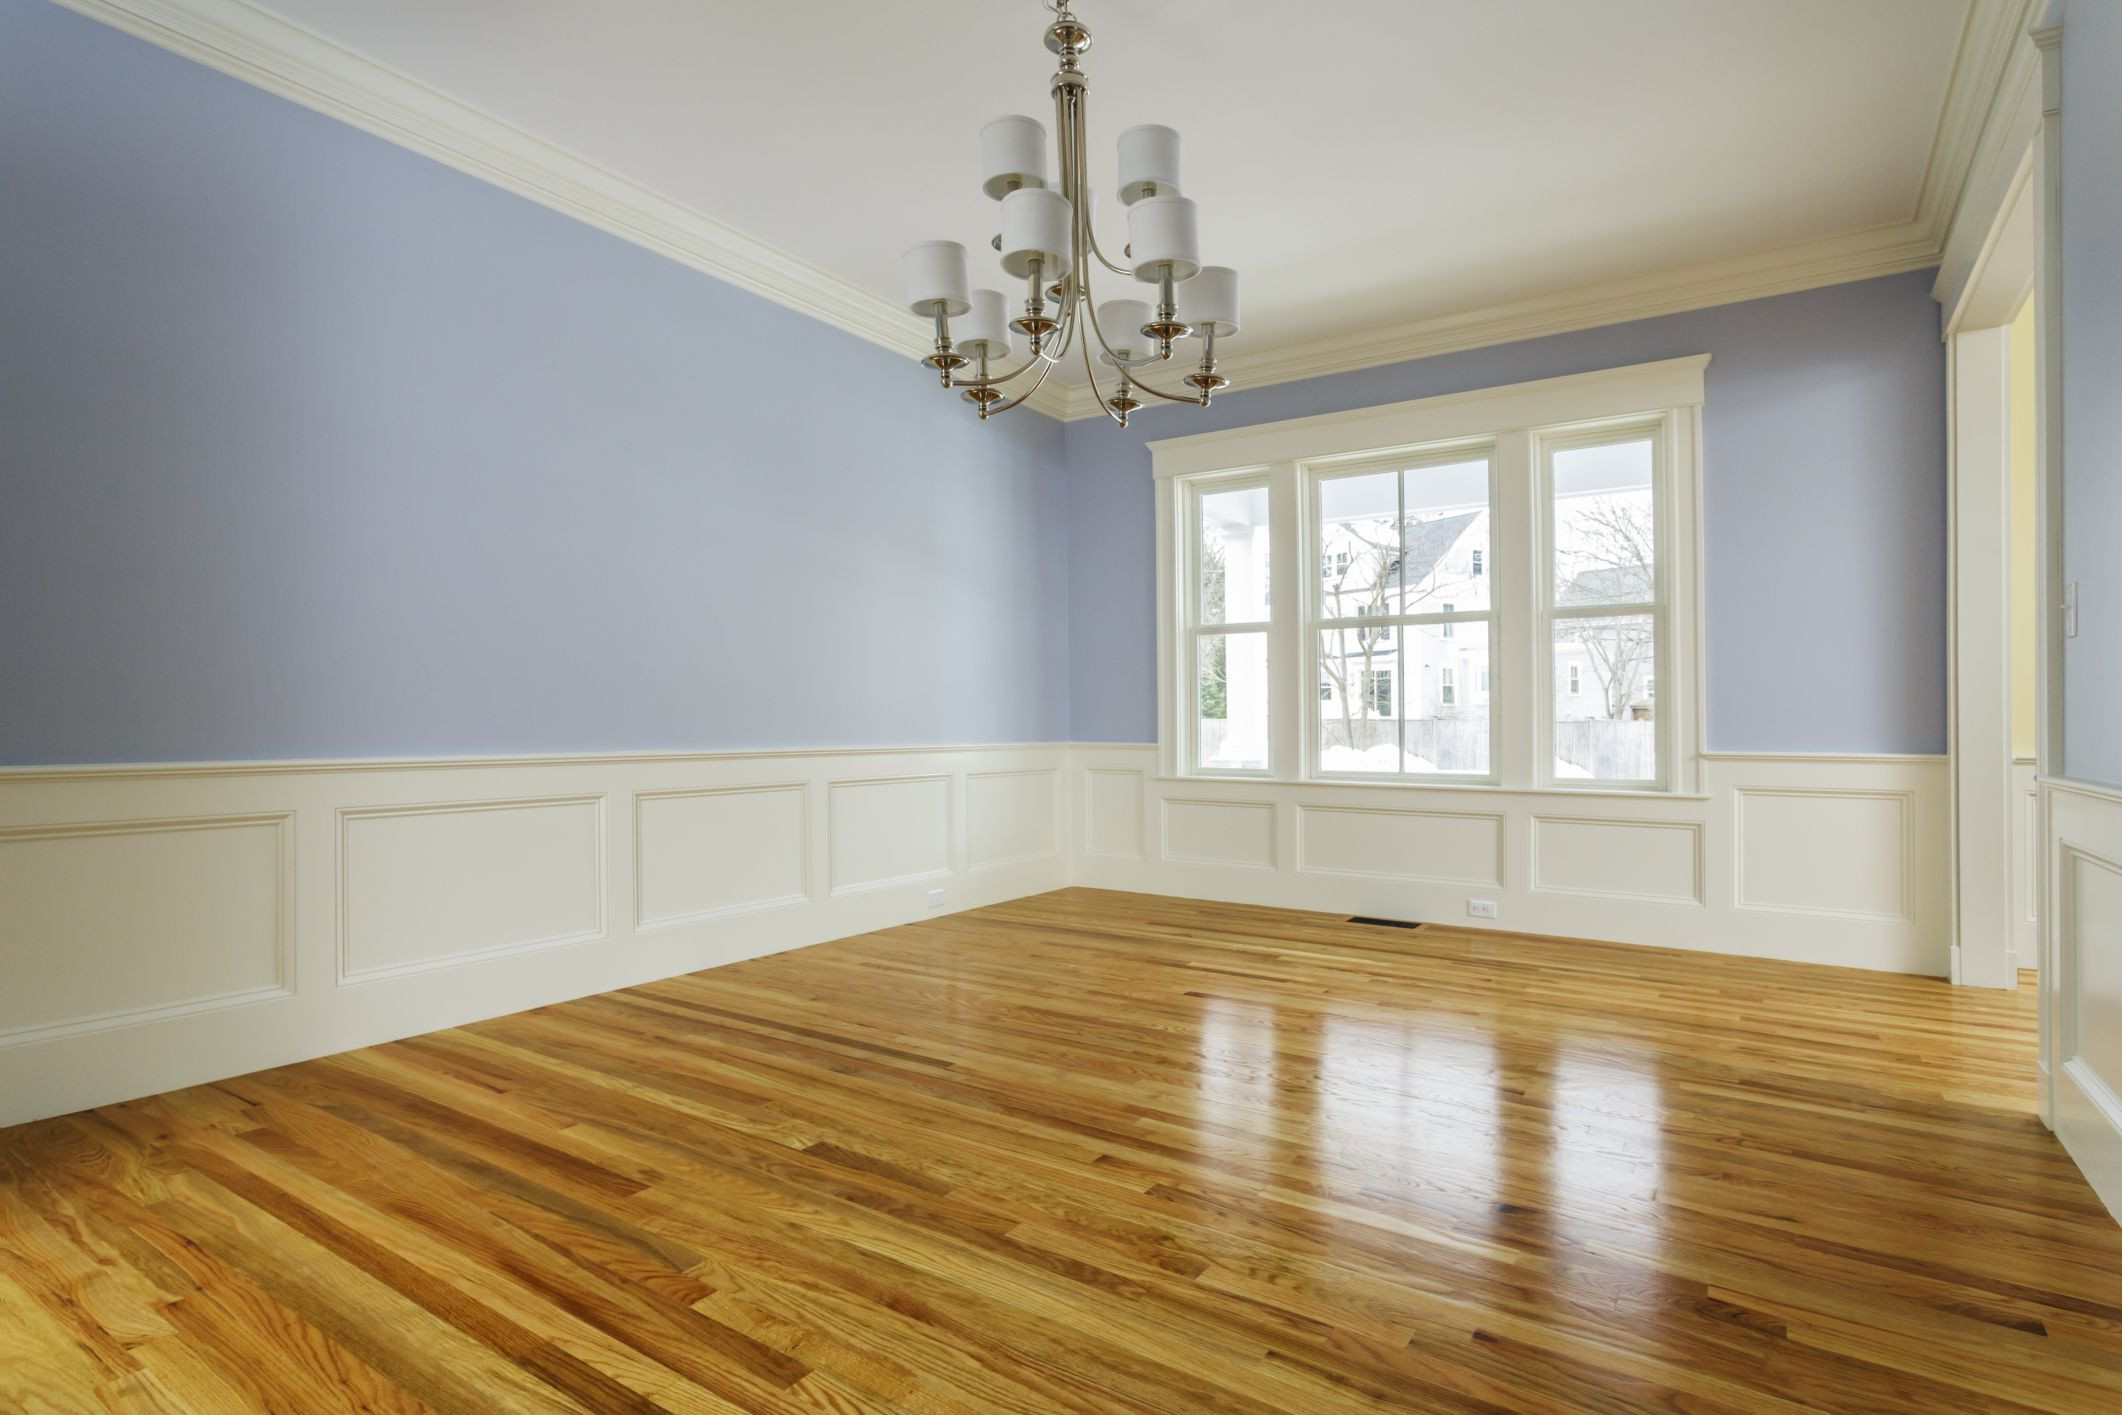 30 Popular Bruce Hardwood Floor Stain Colors 2021 free download bruce hardwood floor stain colors of the cost to refinish hardwood floors with regard to 168686572 highres 56a2fd773df78cf7727b6cb3